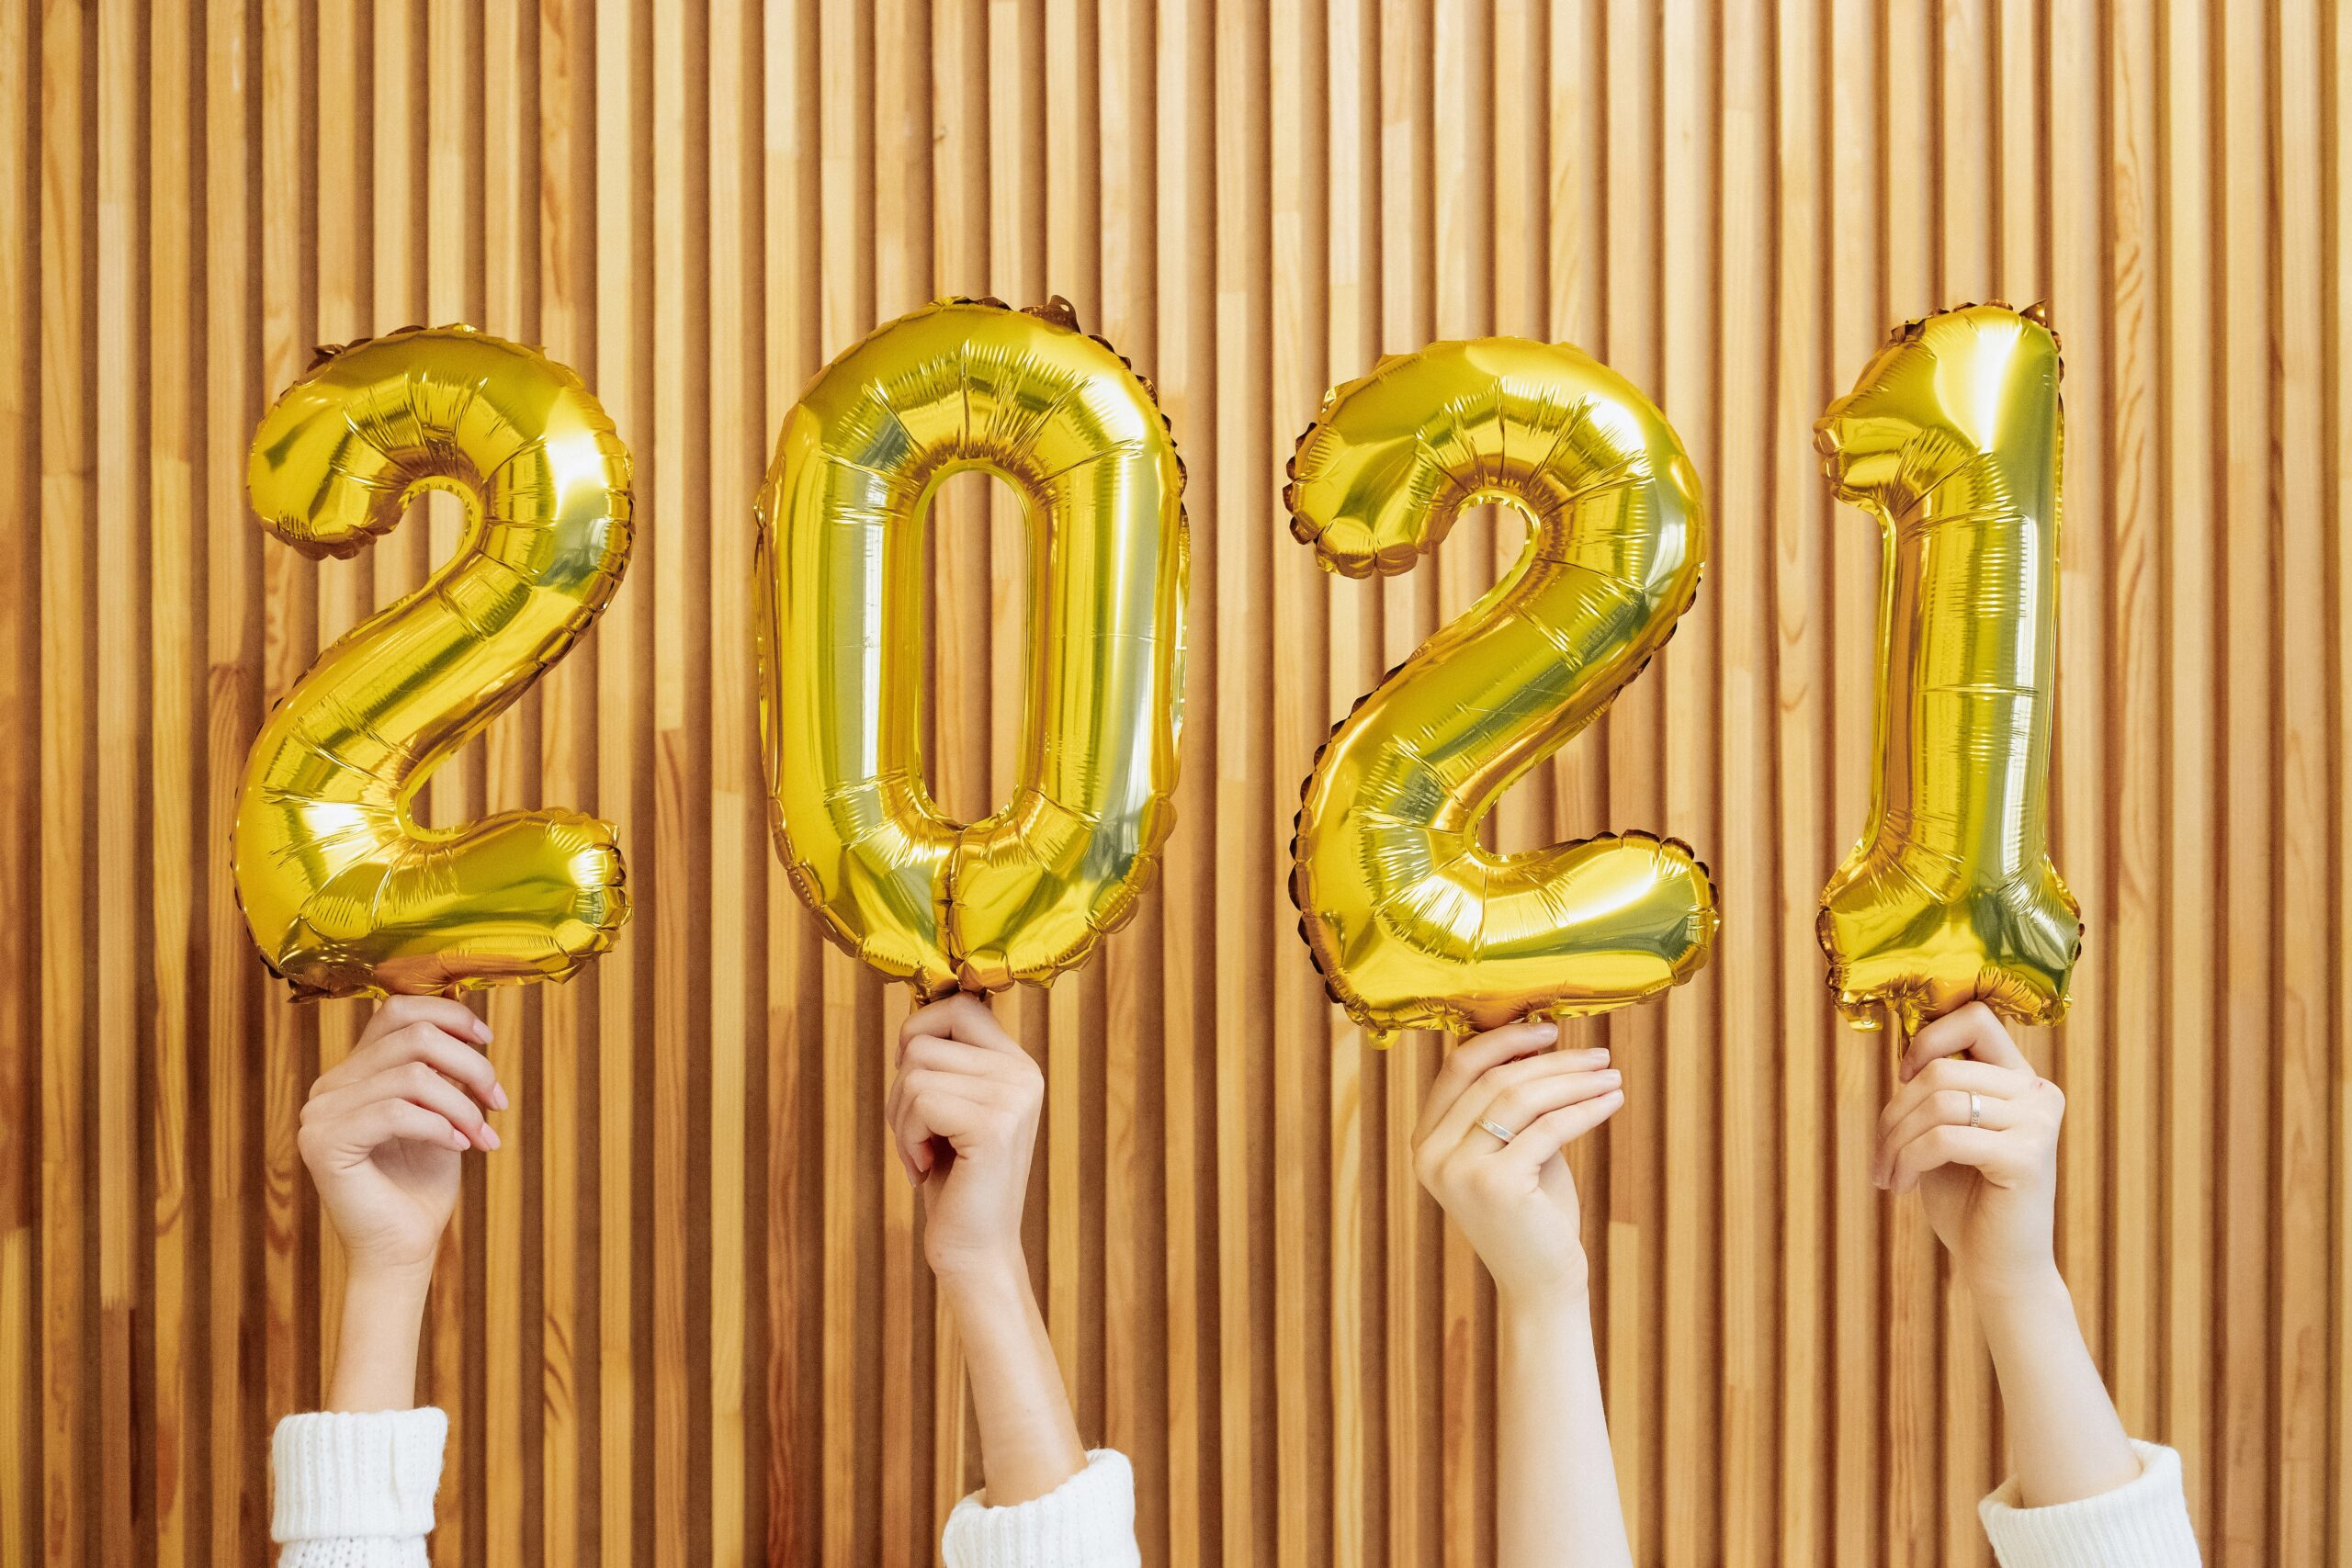 hands holding gold 2021 balloons